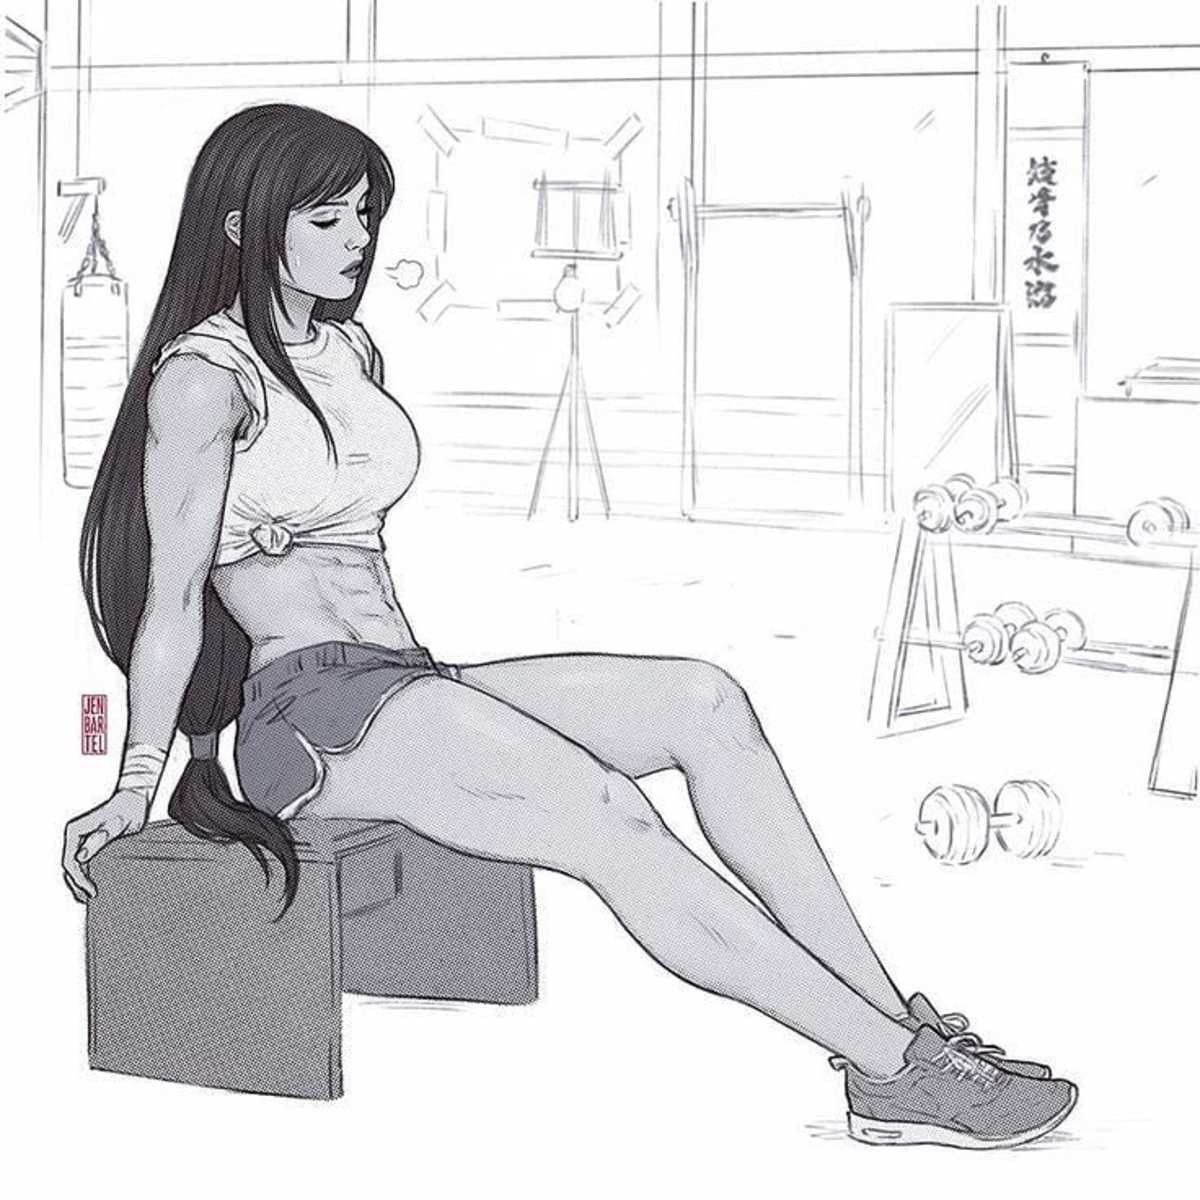 Tifa after workout. .. And now for the follow up workout.